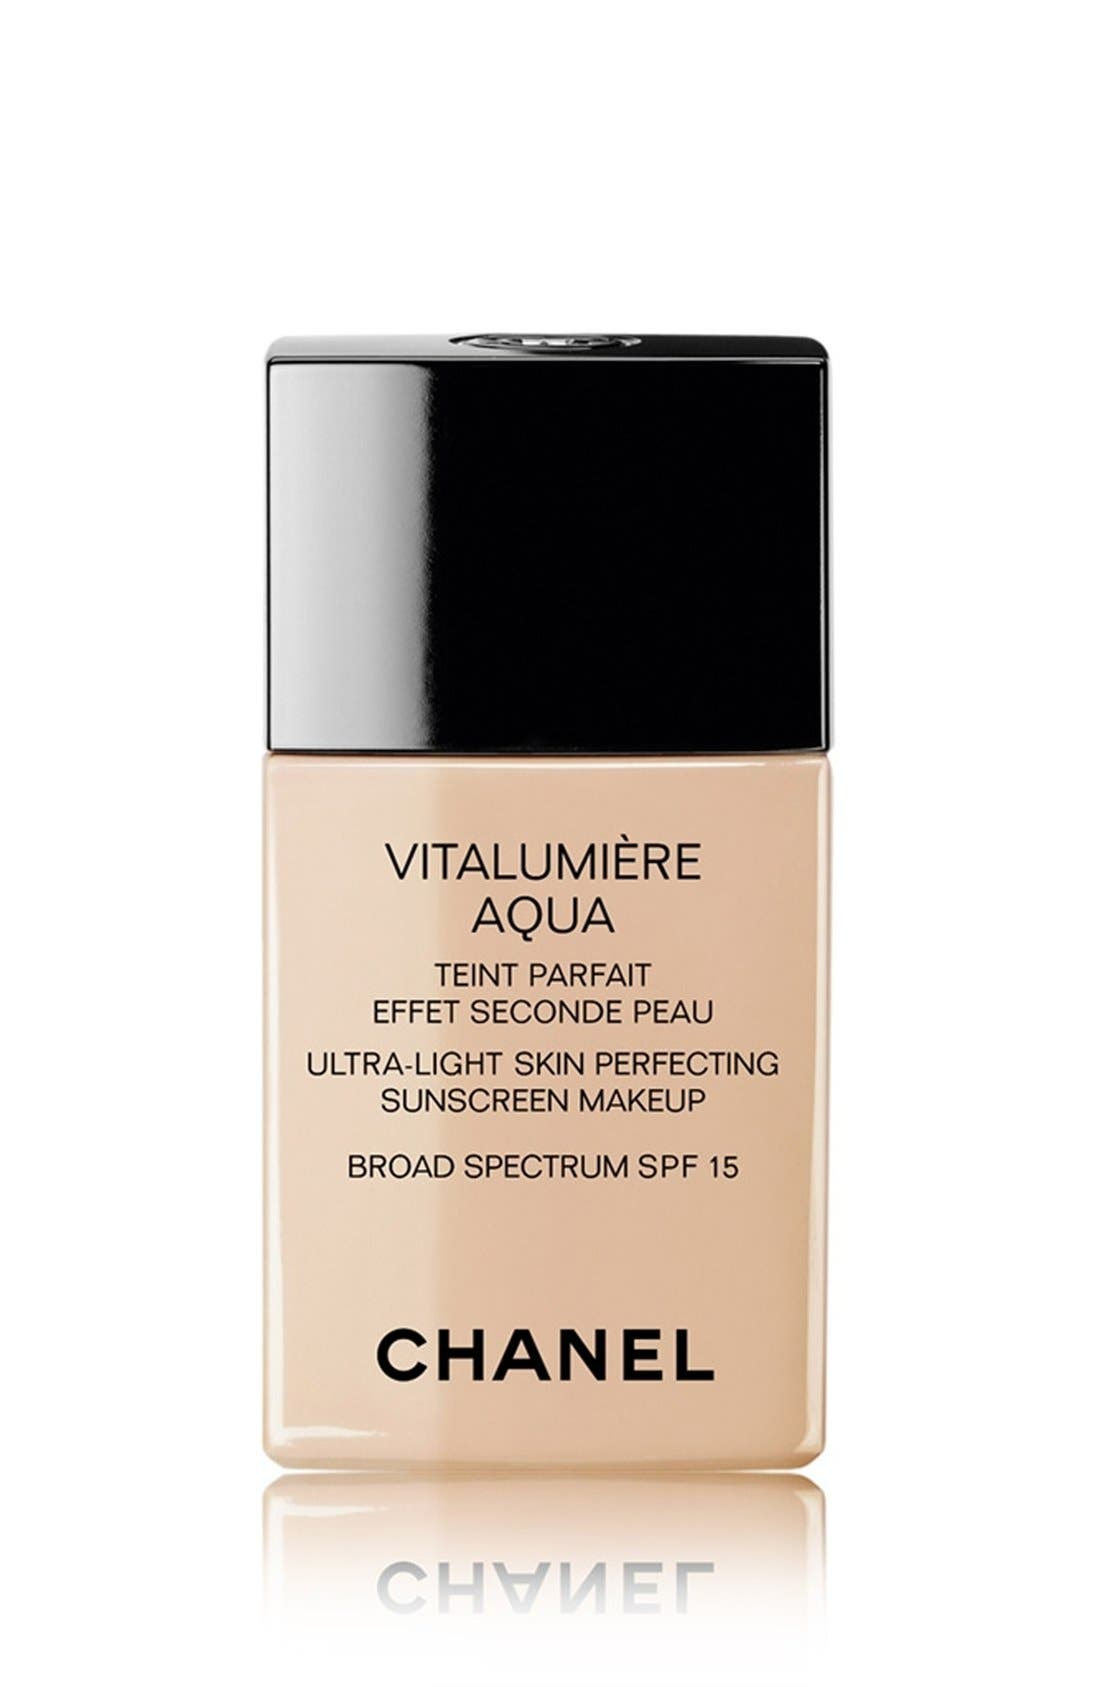 CHANEL VITALUMIÈRE AQUA 